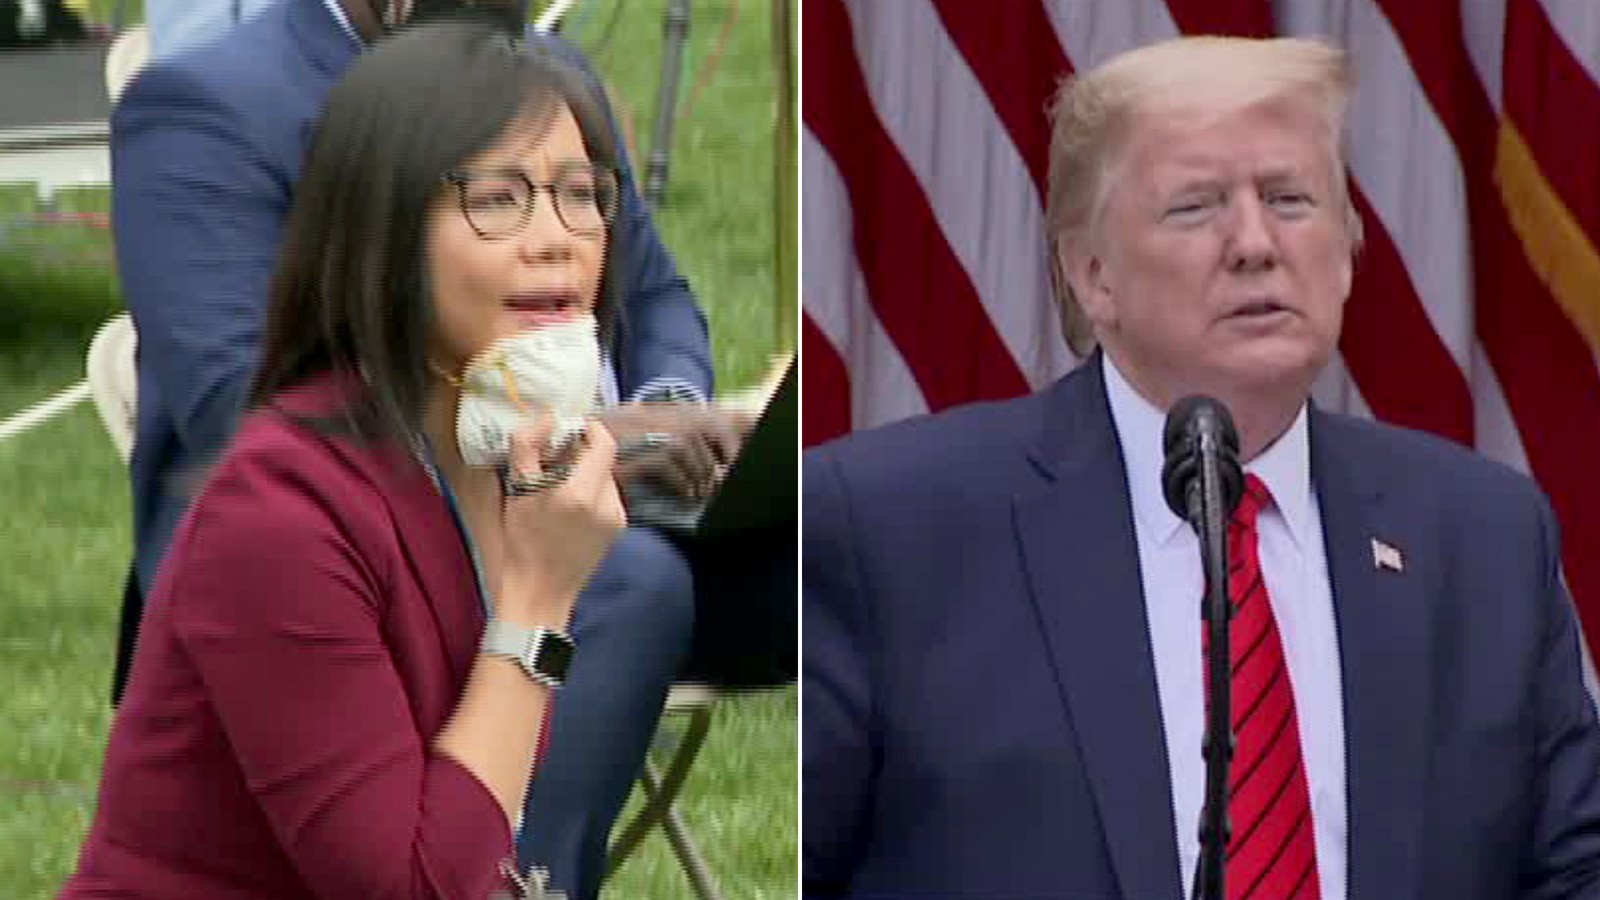 """President Donald Trump abruptly ended his press conference after a contentious exchange in which he asked an Asian-American journalist to """"ask China"""" about her question and then refused to take a query from another White House reporter. (Pool)"""